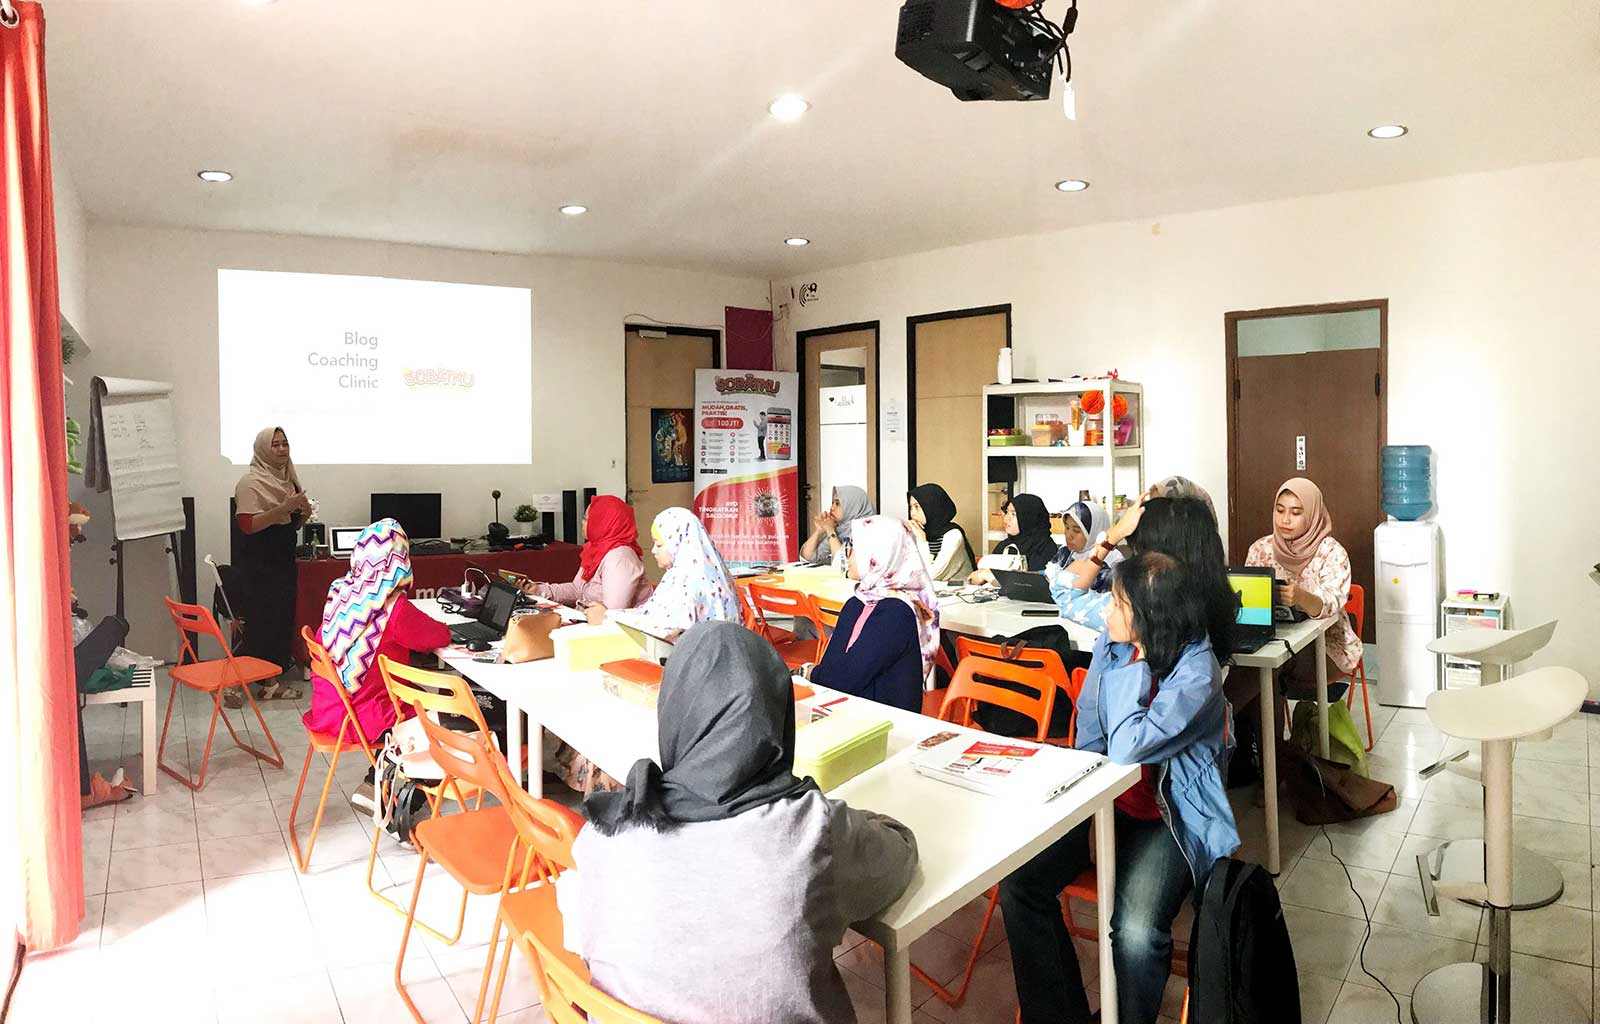 Blog Coaching Clinic Blogger Perempuan Network